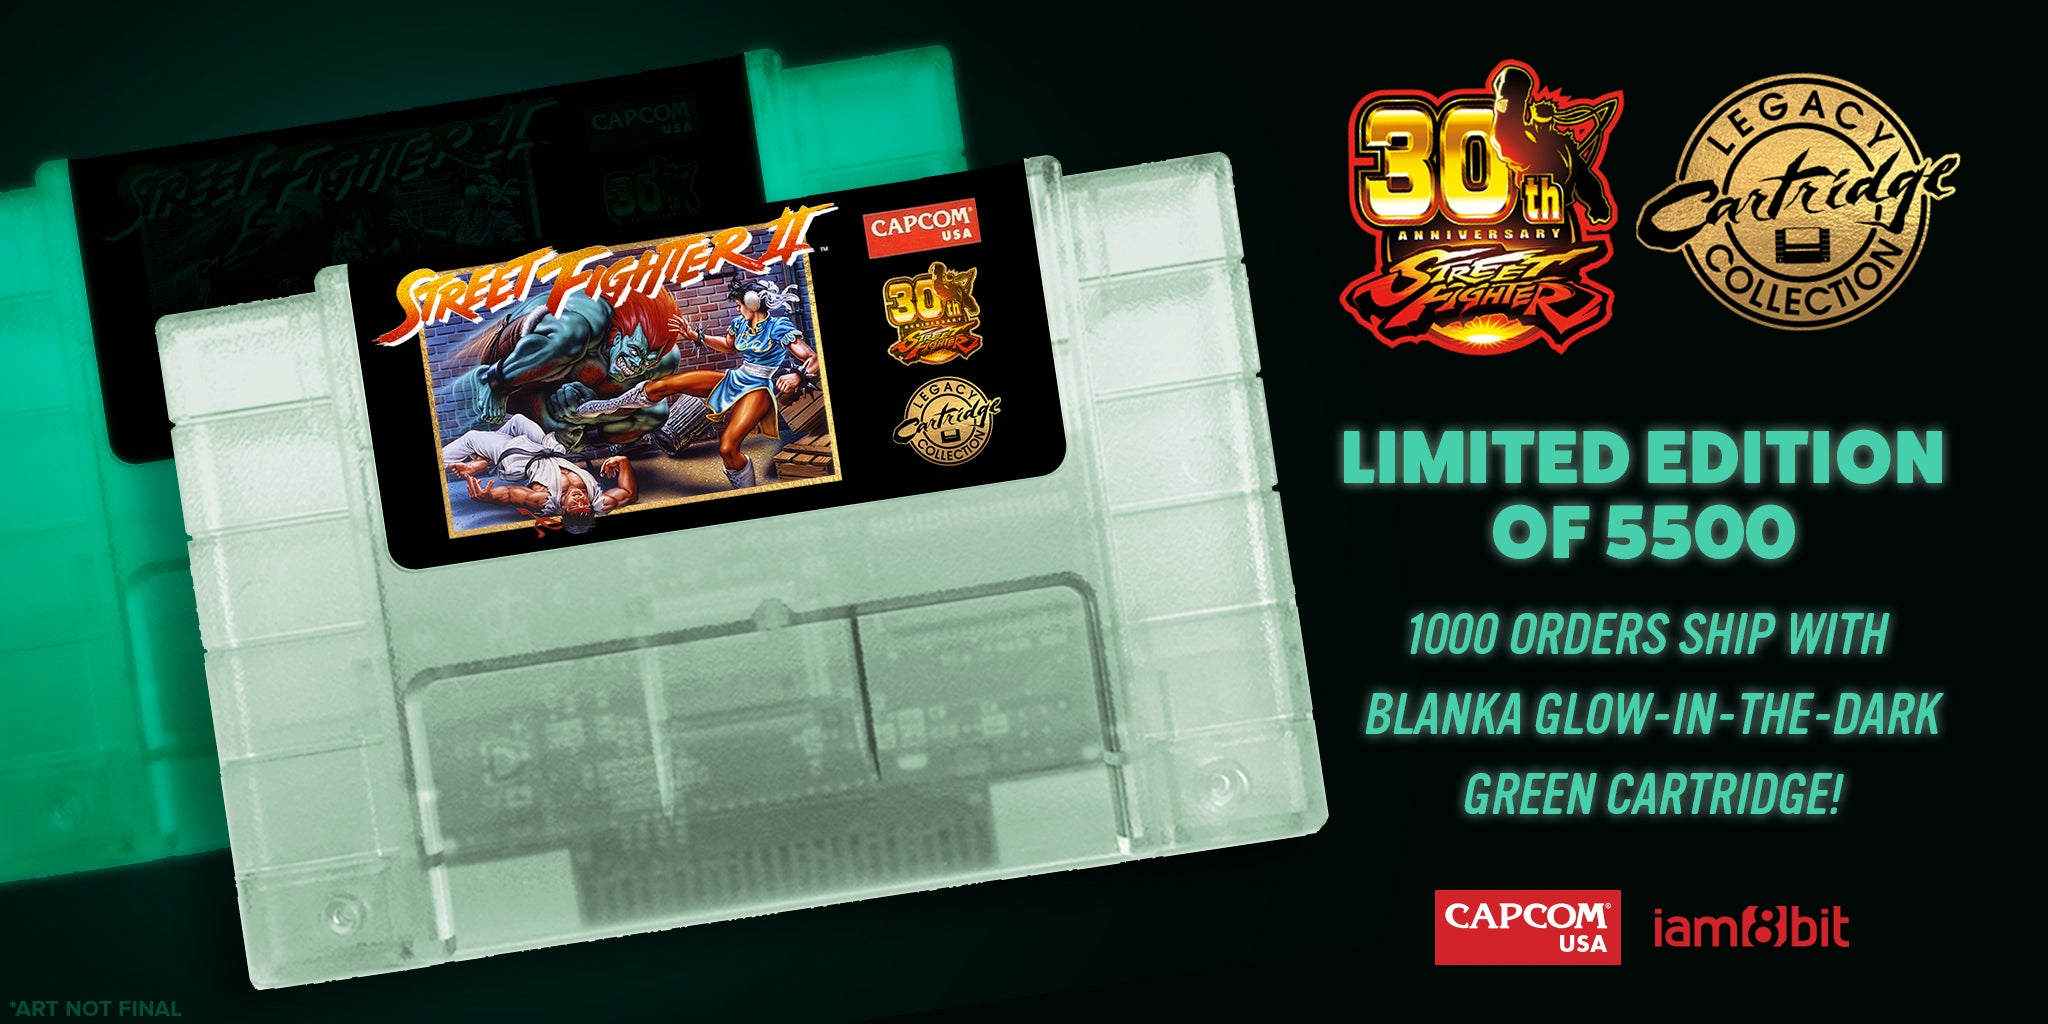 Capcom Re-Releases Street Fighter II Cartridge For The SNES